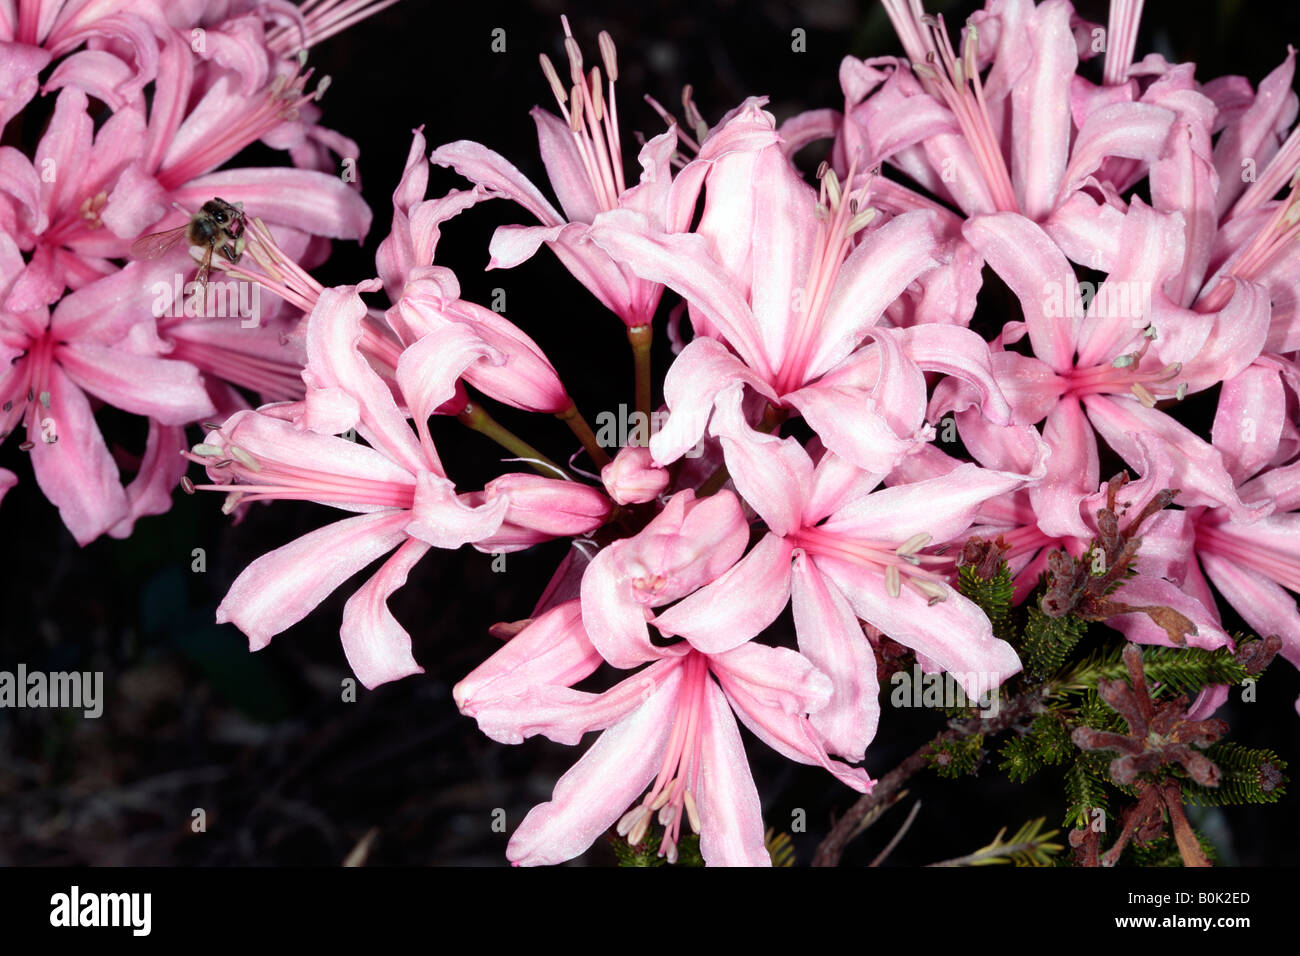 Pink Nerine/Nerina/Guernsey Lily and Honey Bee collecting pollen-Nerine sarniensis and Apis mellifera -Family Amaryllidaceae - Stock Image